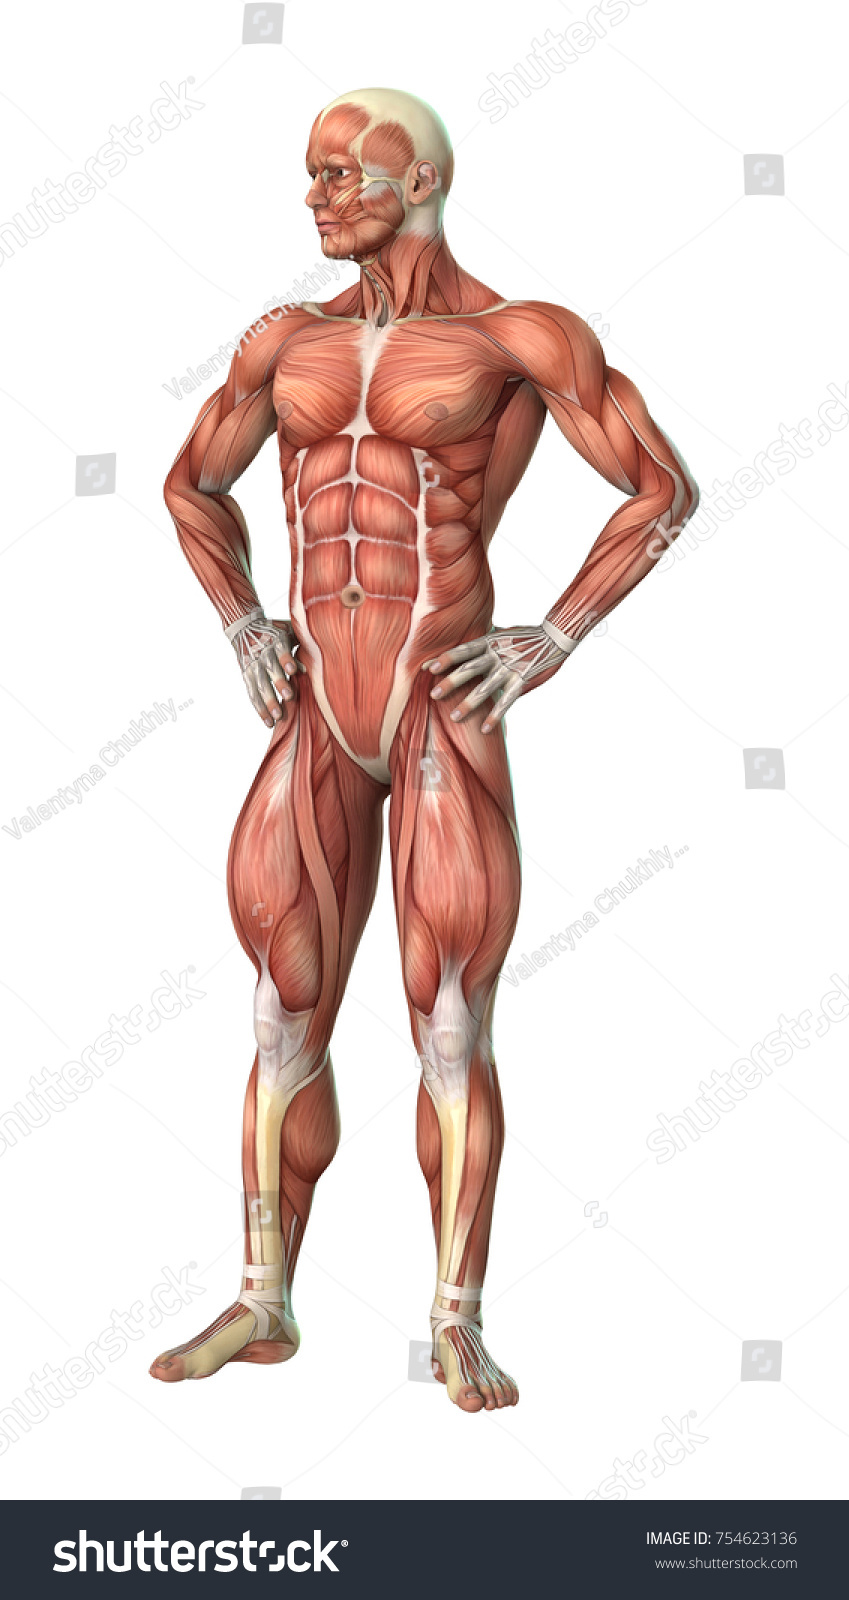 3d Rendering Of A Male Anatomy Figure With Muscles Maps Isolated On